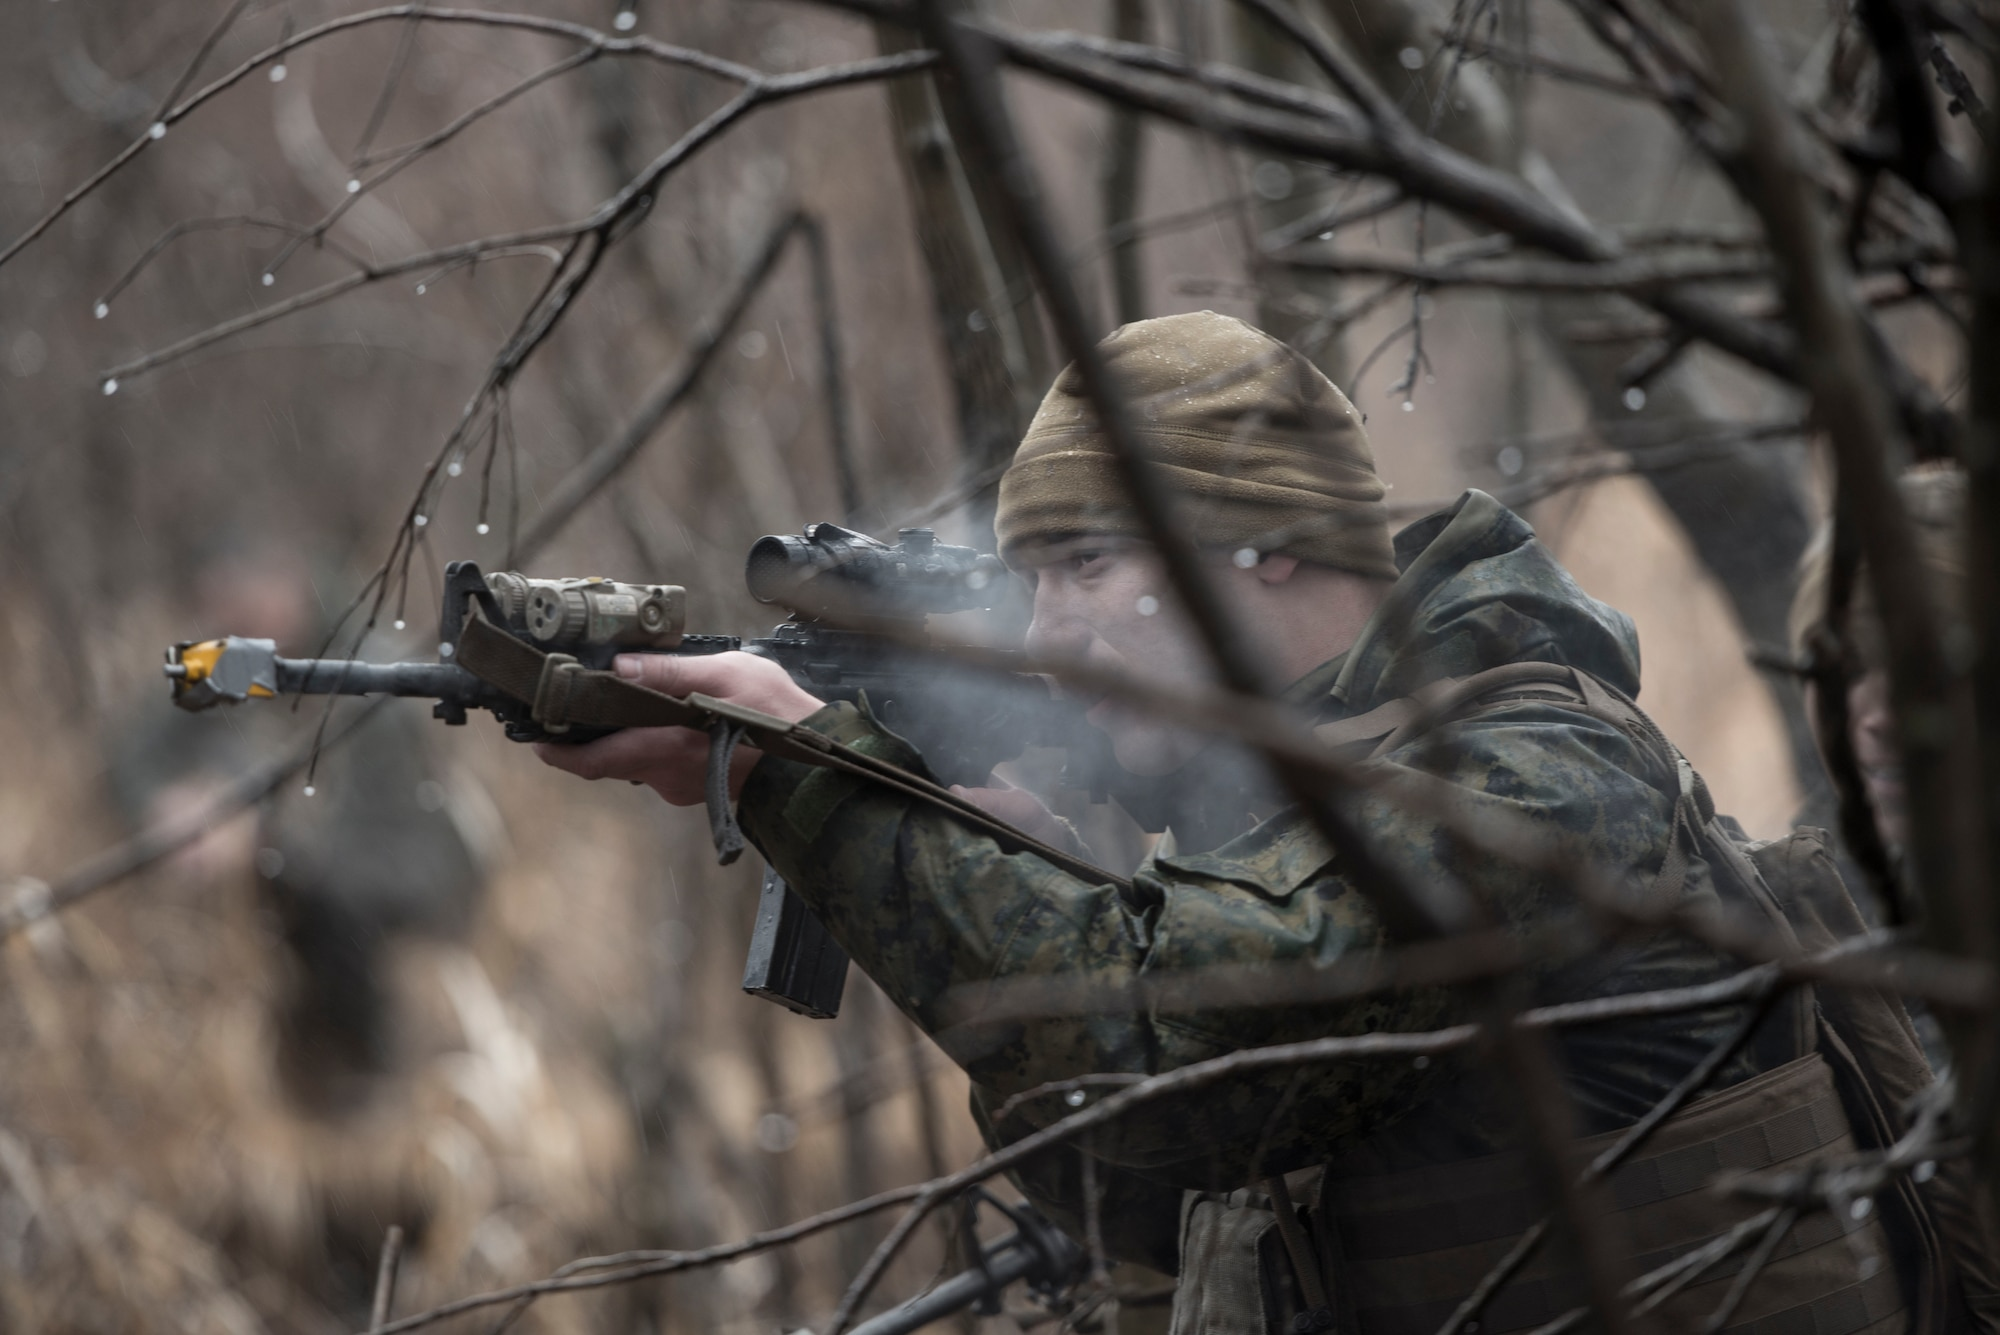 """A Sailor with the 1st Batallion, 1st Marines, simulates weapon fire shooting blanks toward escaping aircrew members during joint training Jan. 16, 2015 at Camp Fuji, Japan. The Marines, who were acting as enemy aggressors searching for Air Force aircrew during survival, evasion, resistance and escape training, also practiced their small arms engagement with a """"rescue"""" team of Marines. (U.S. Air Force photo/Staff Sgt. Cody H. Ramirez/)"""